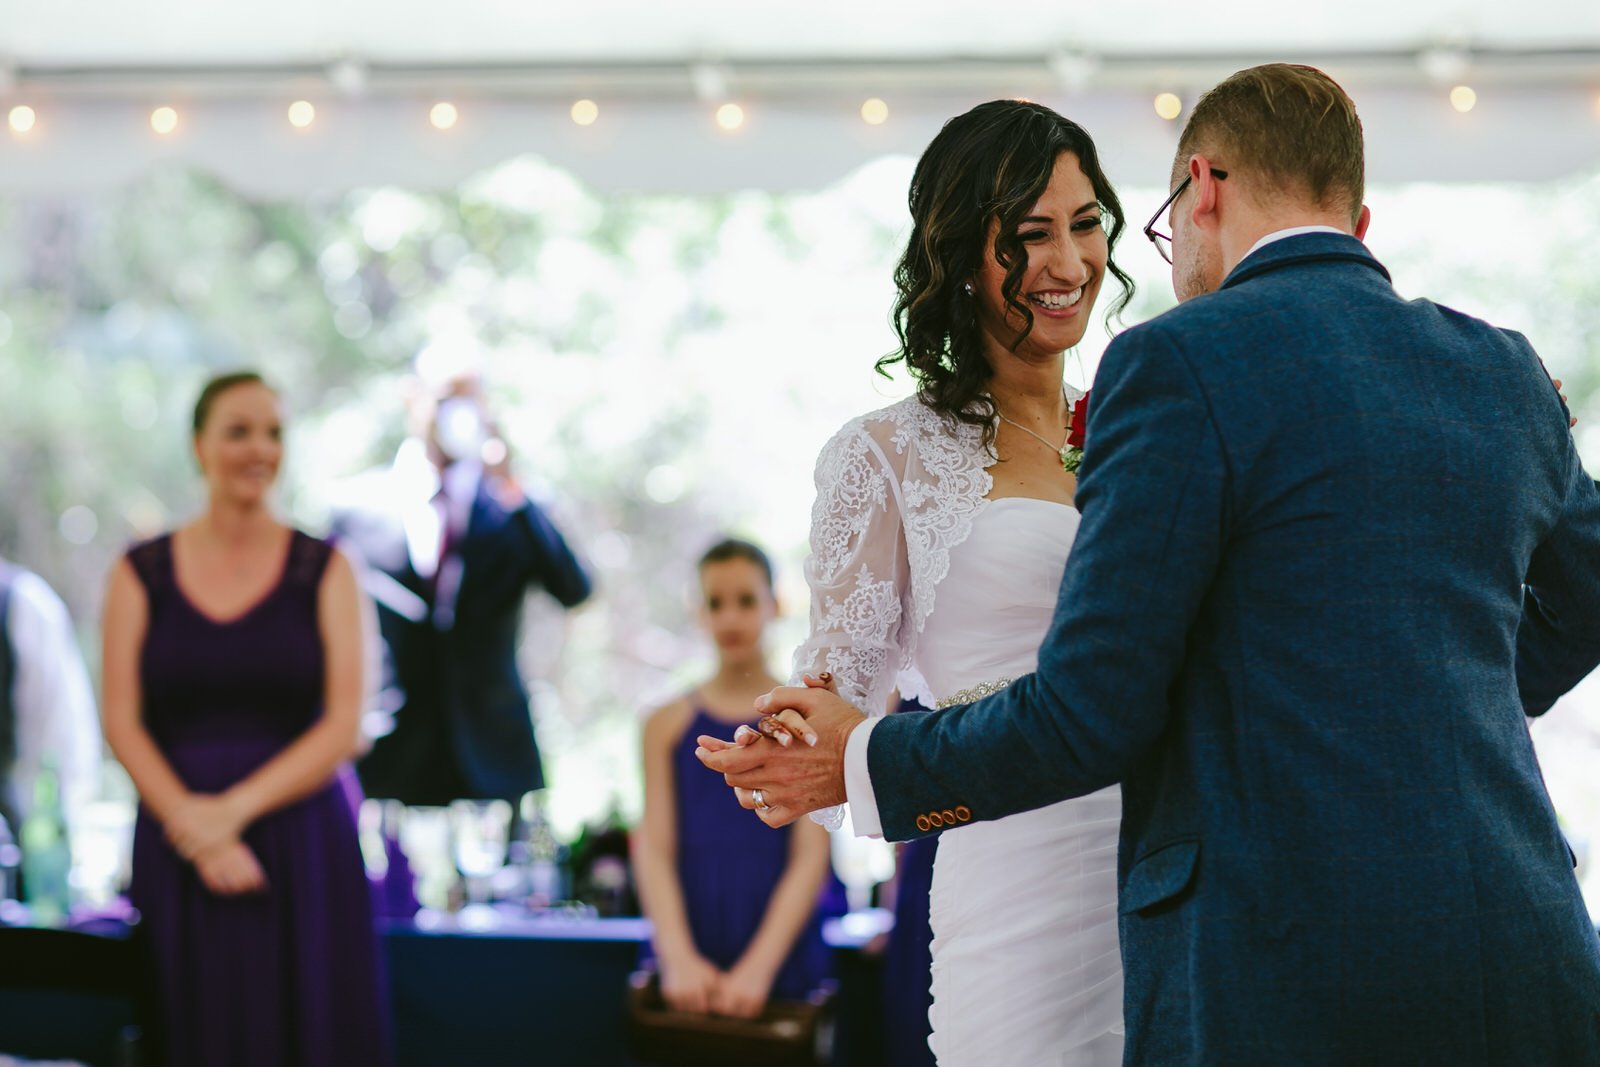 kashi-wedding-reception-tiny-house-photo-first-dance-bride-laughter.jpg